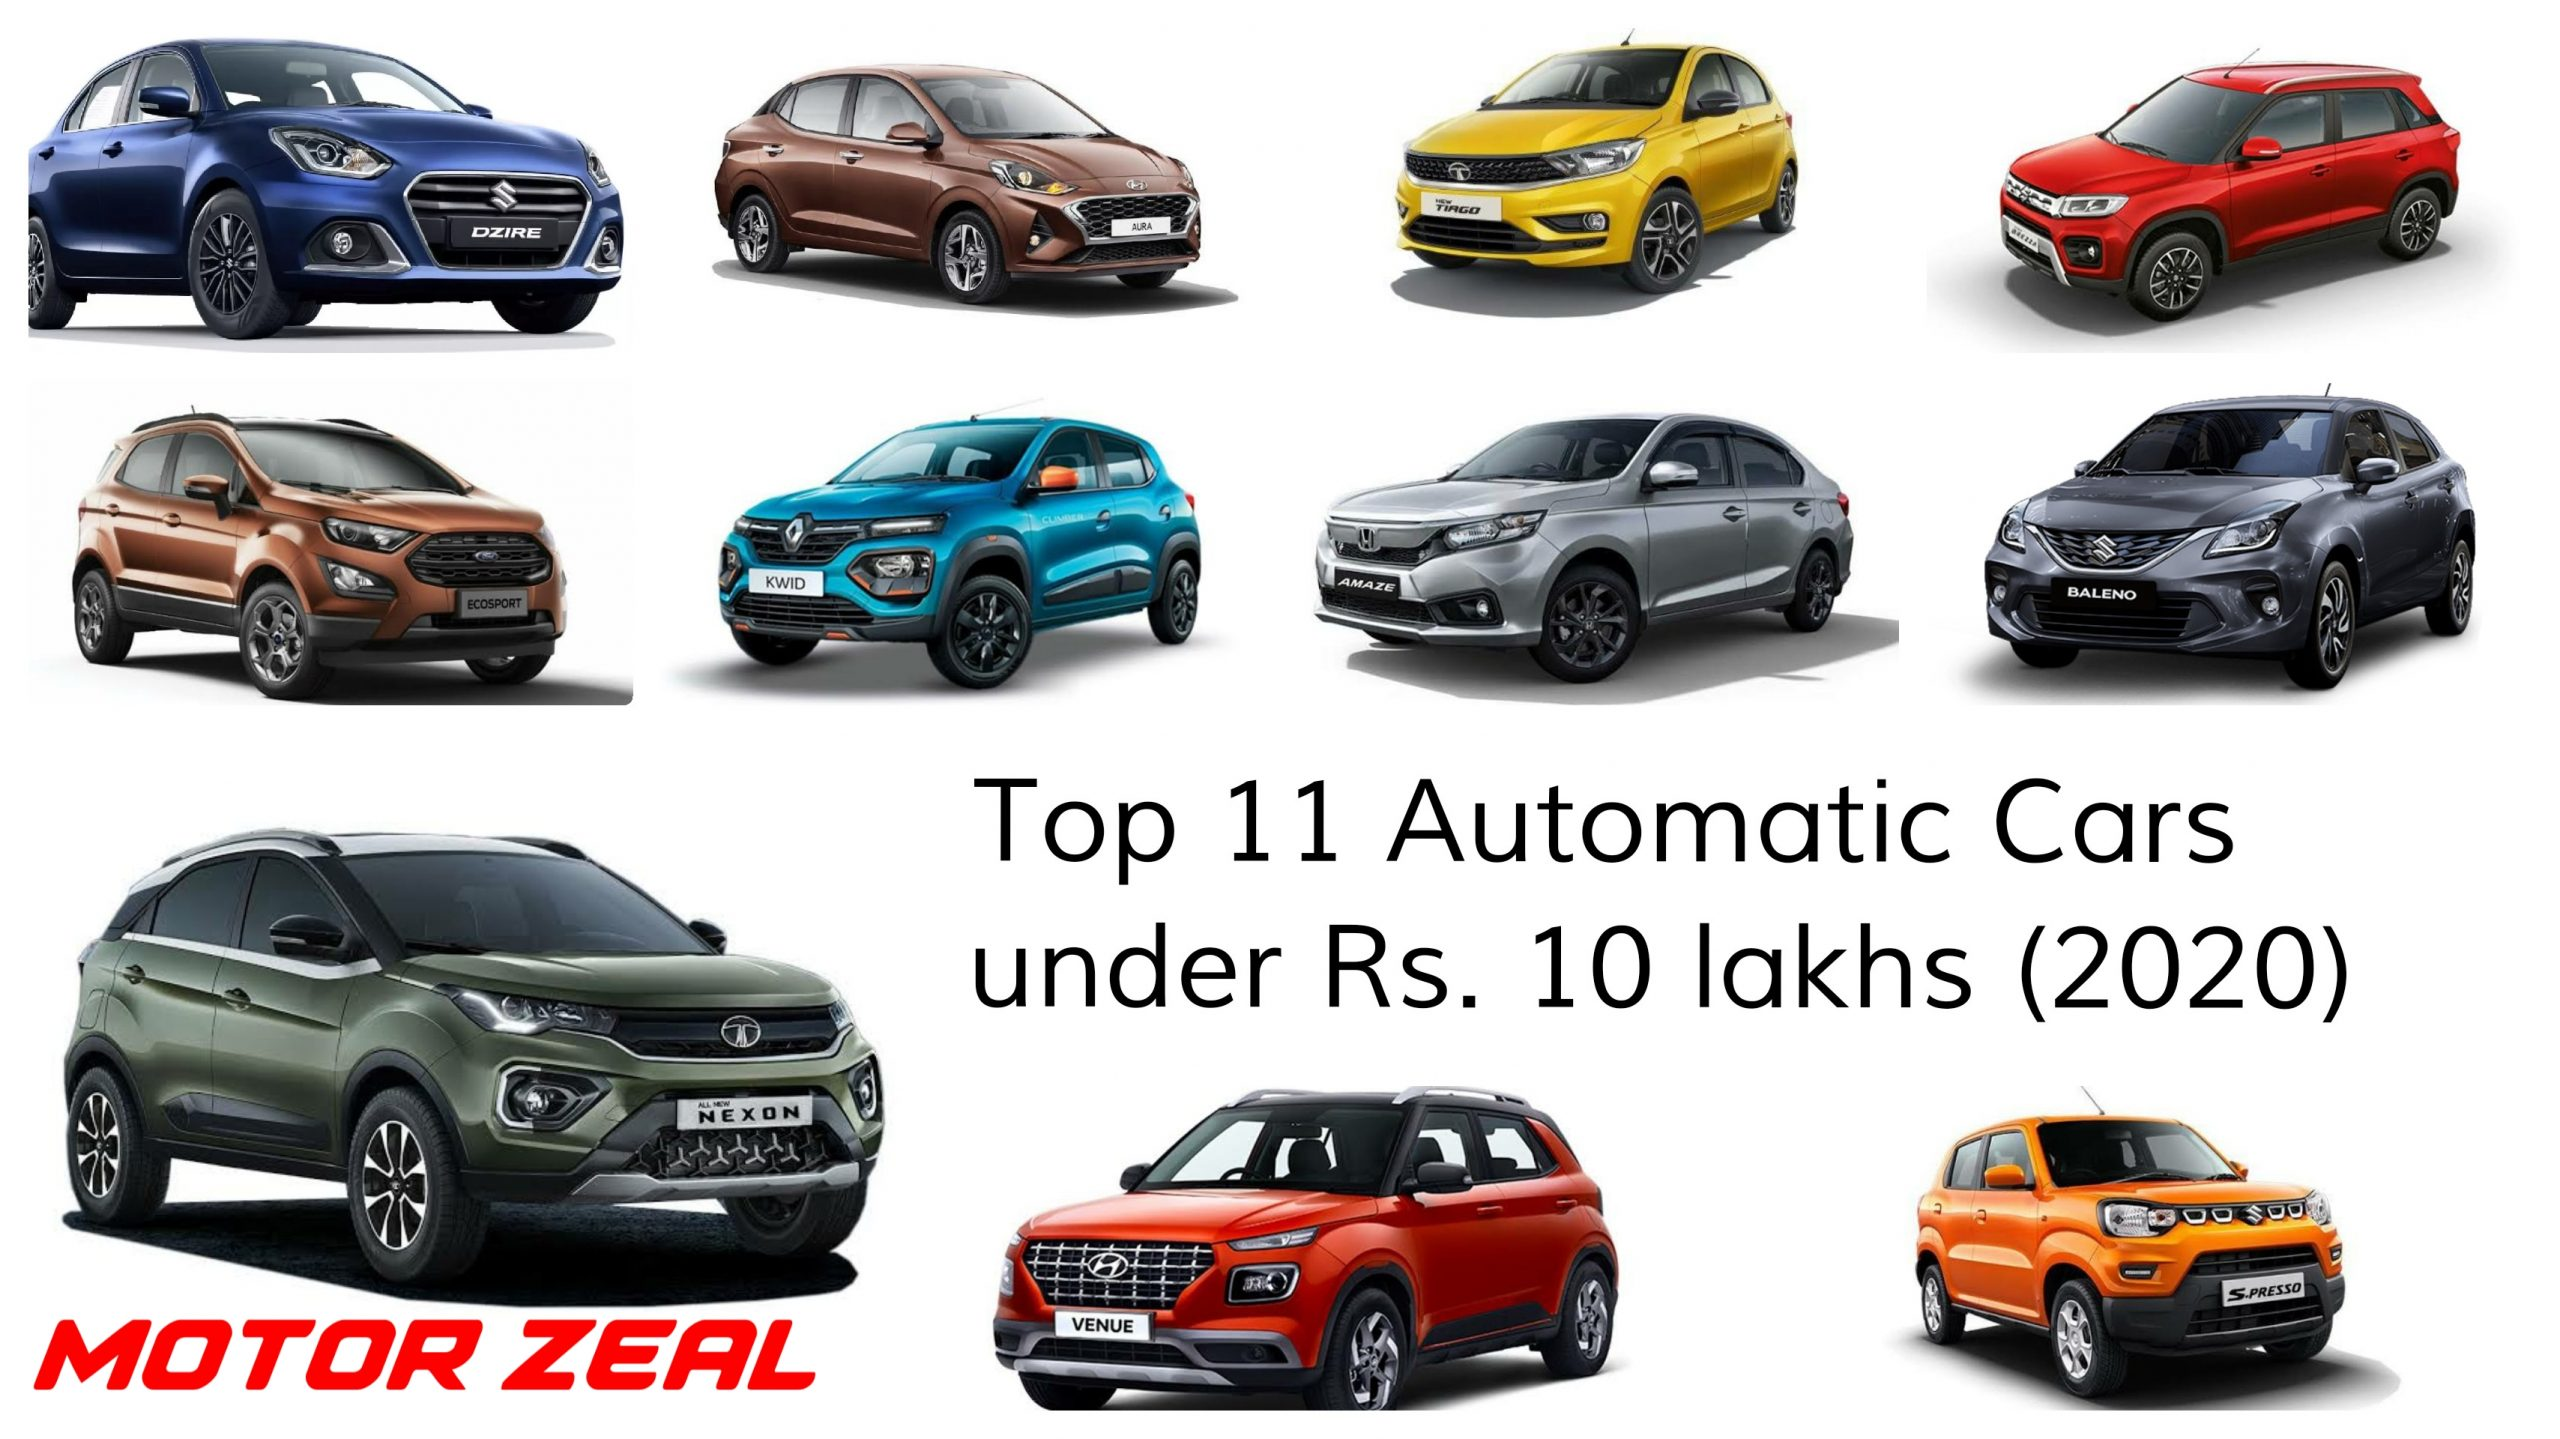 Top 11 Automatic Cars under 10 lakhs Motorzeal